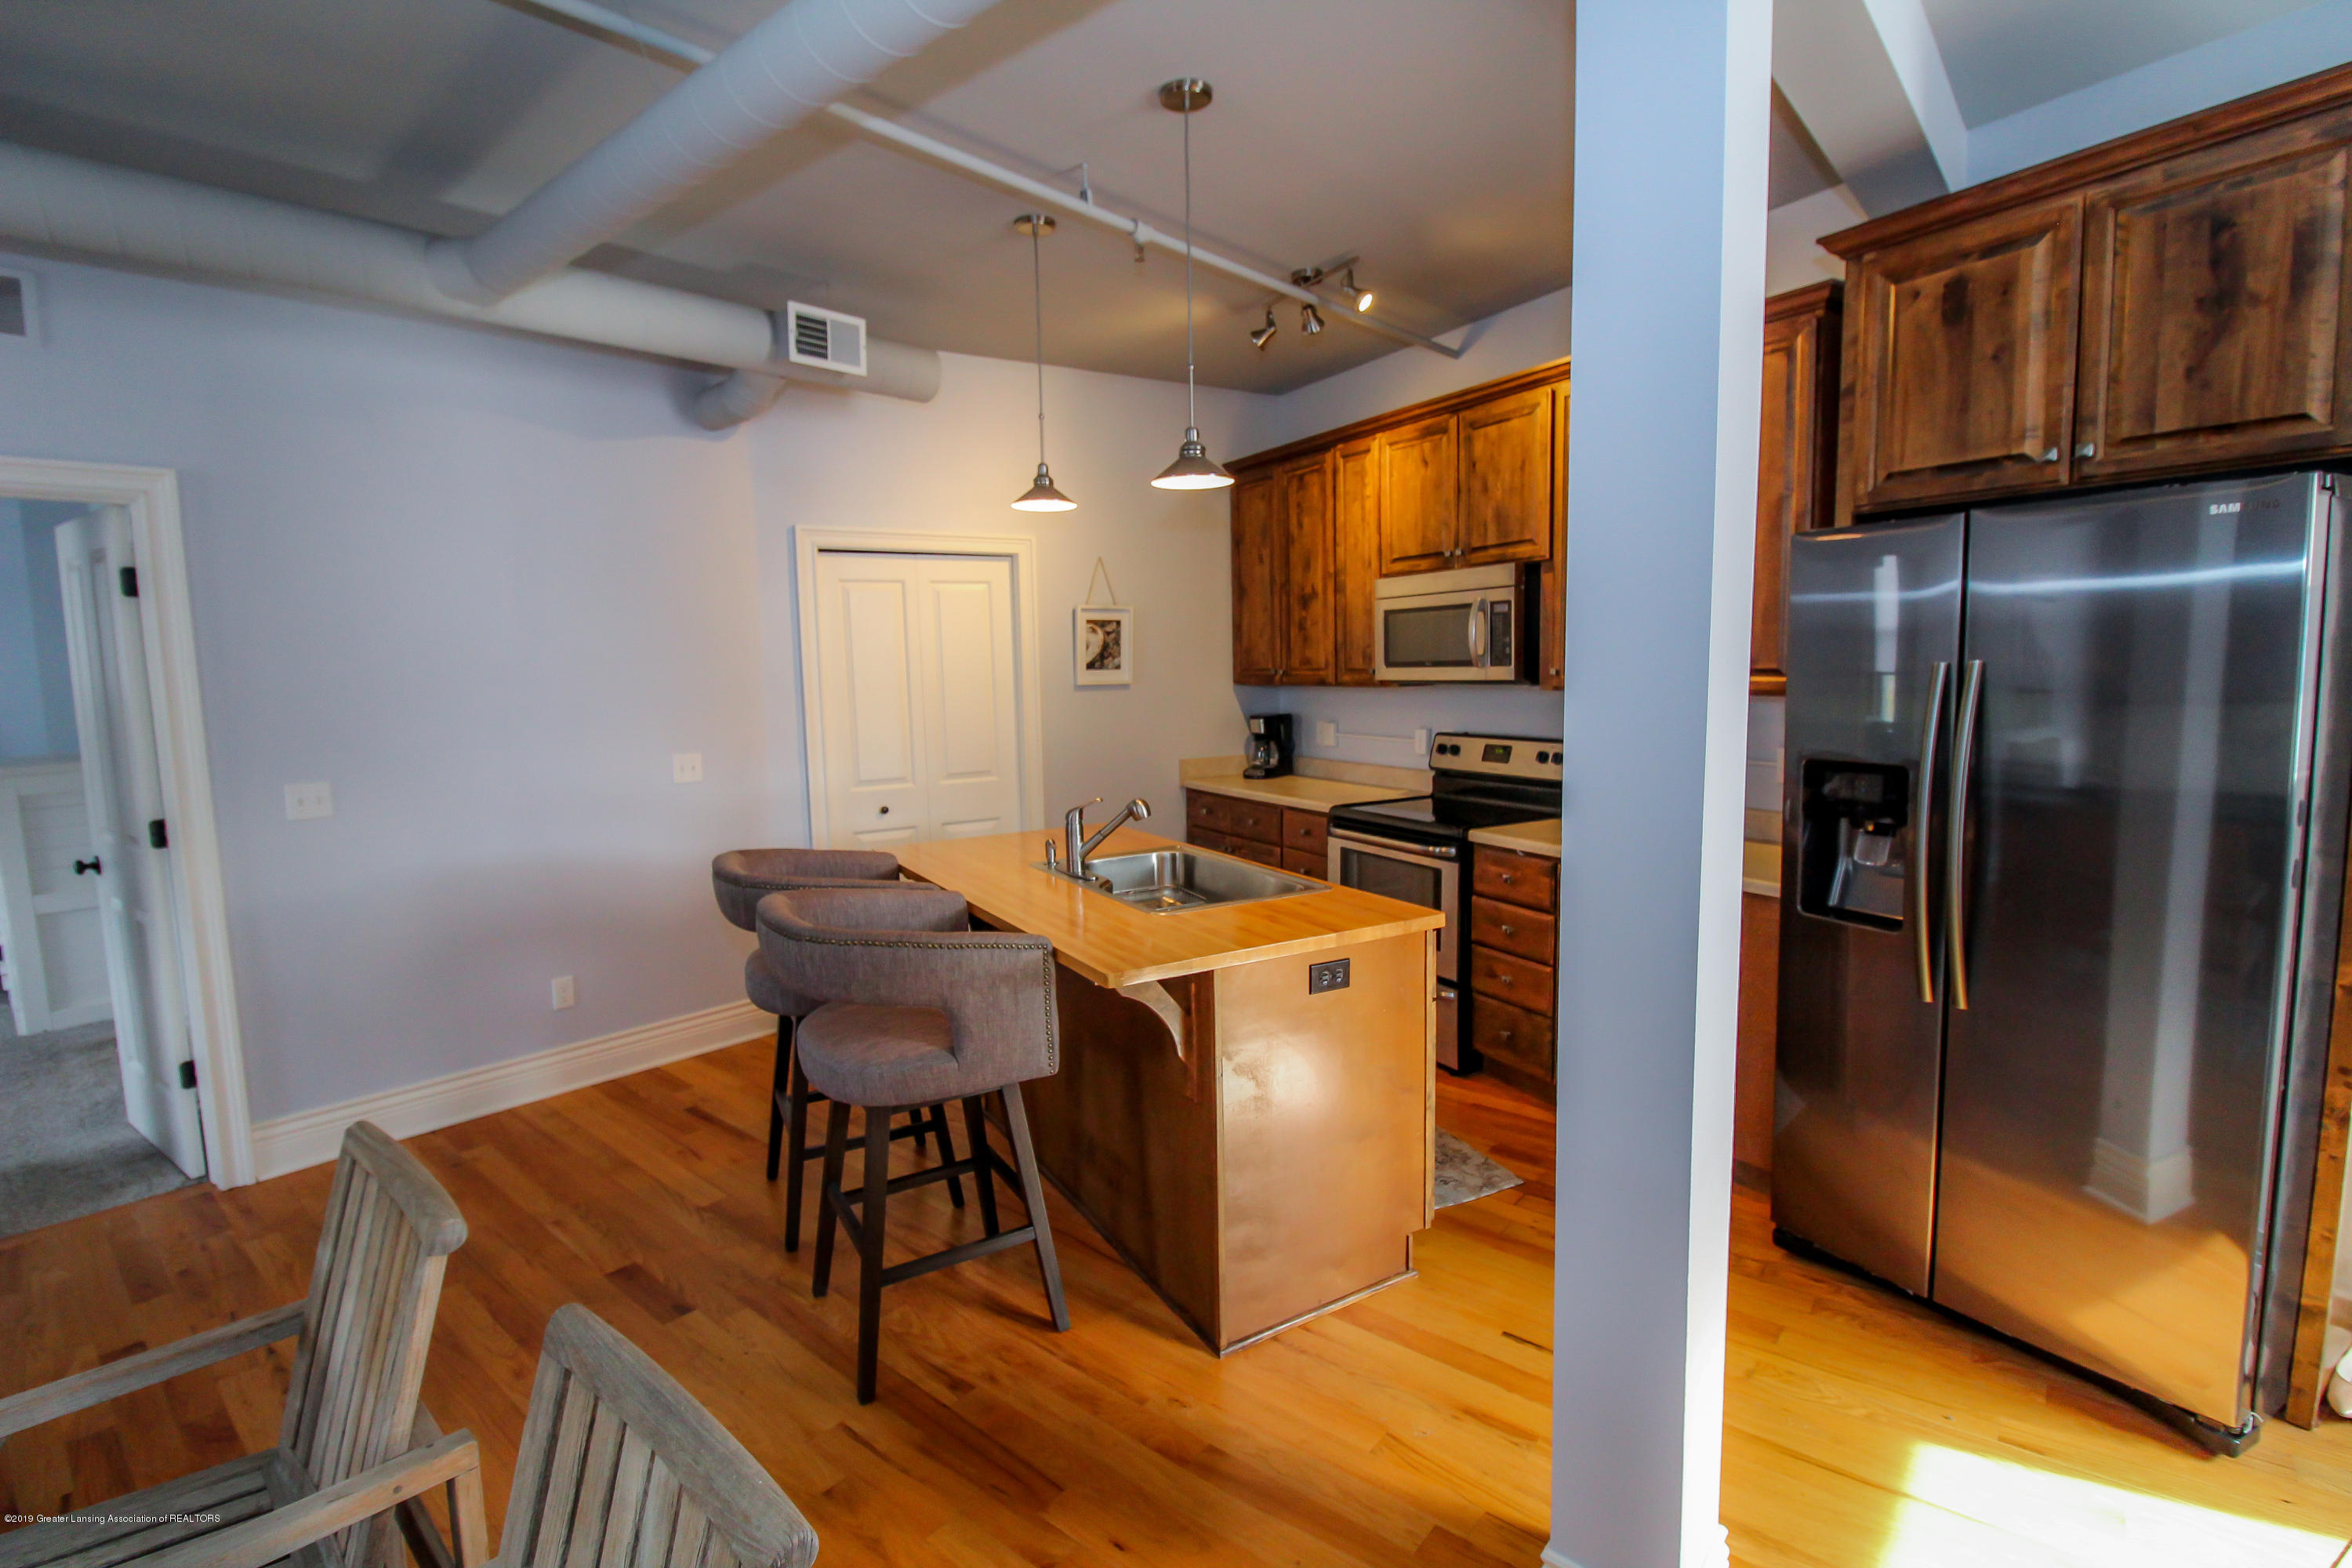 109 E Grand River Ave 4 - kitchen - 9